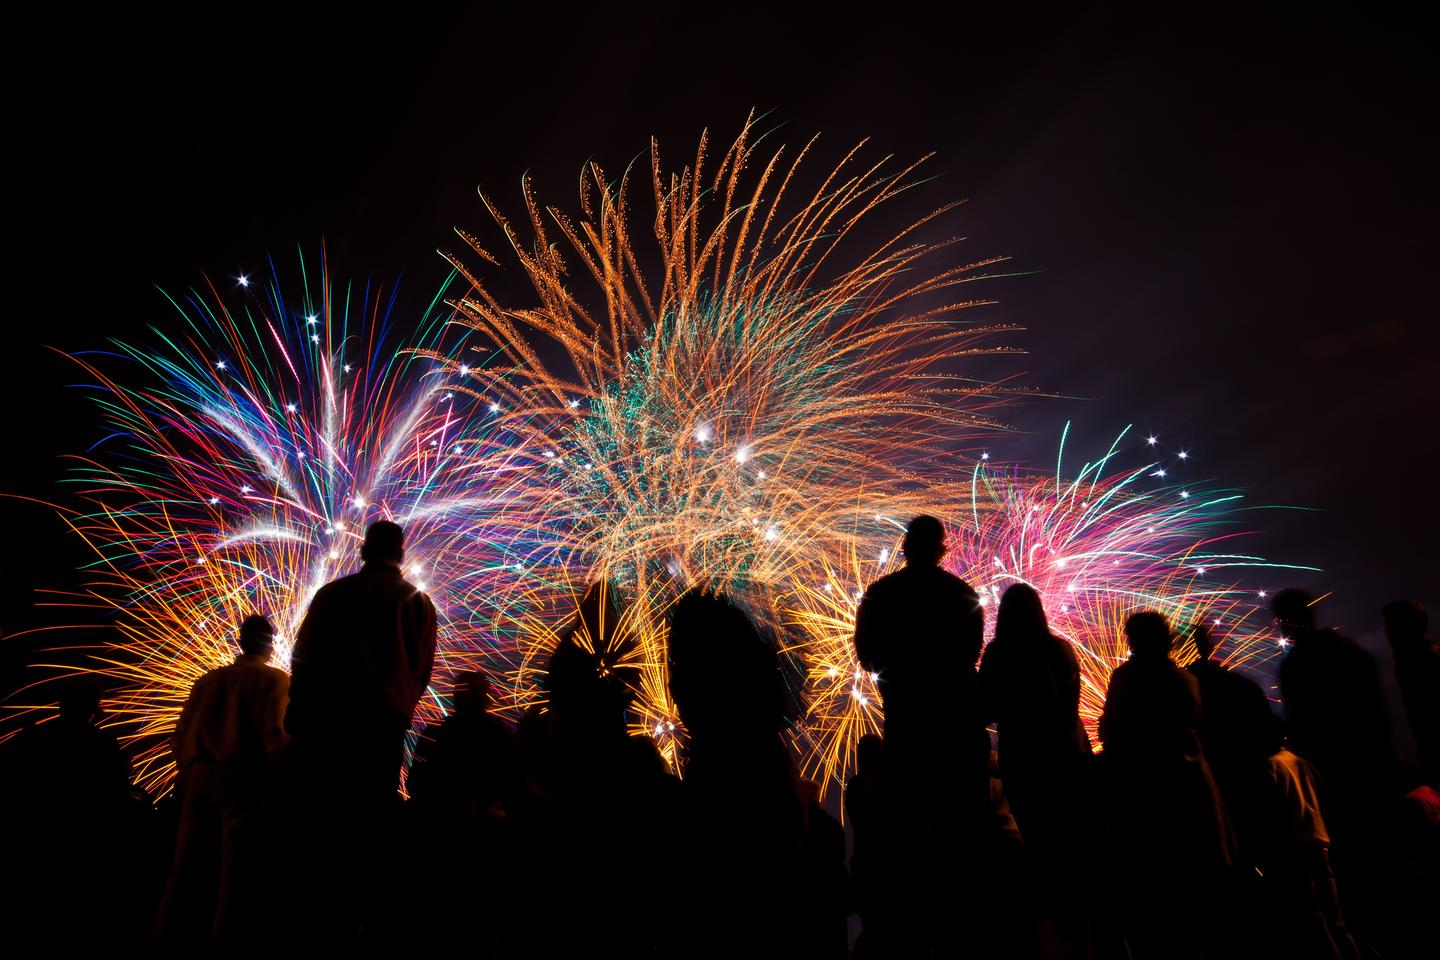 A new study has found pollution from fireworks may damage the health of humans and animals